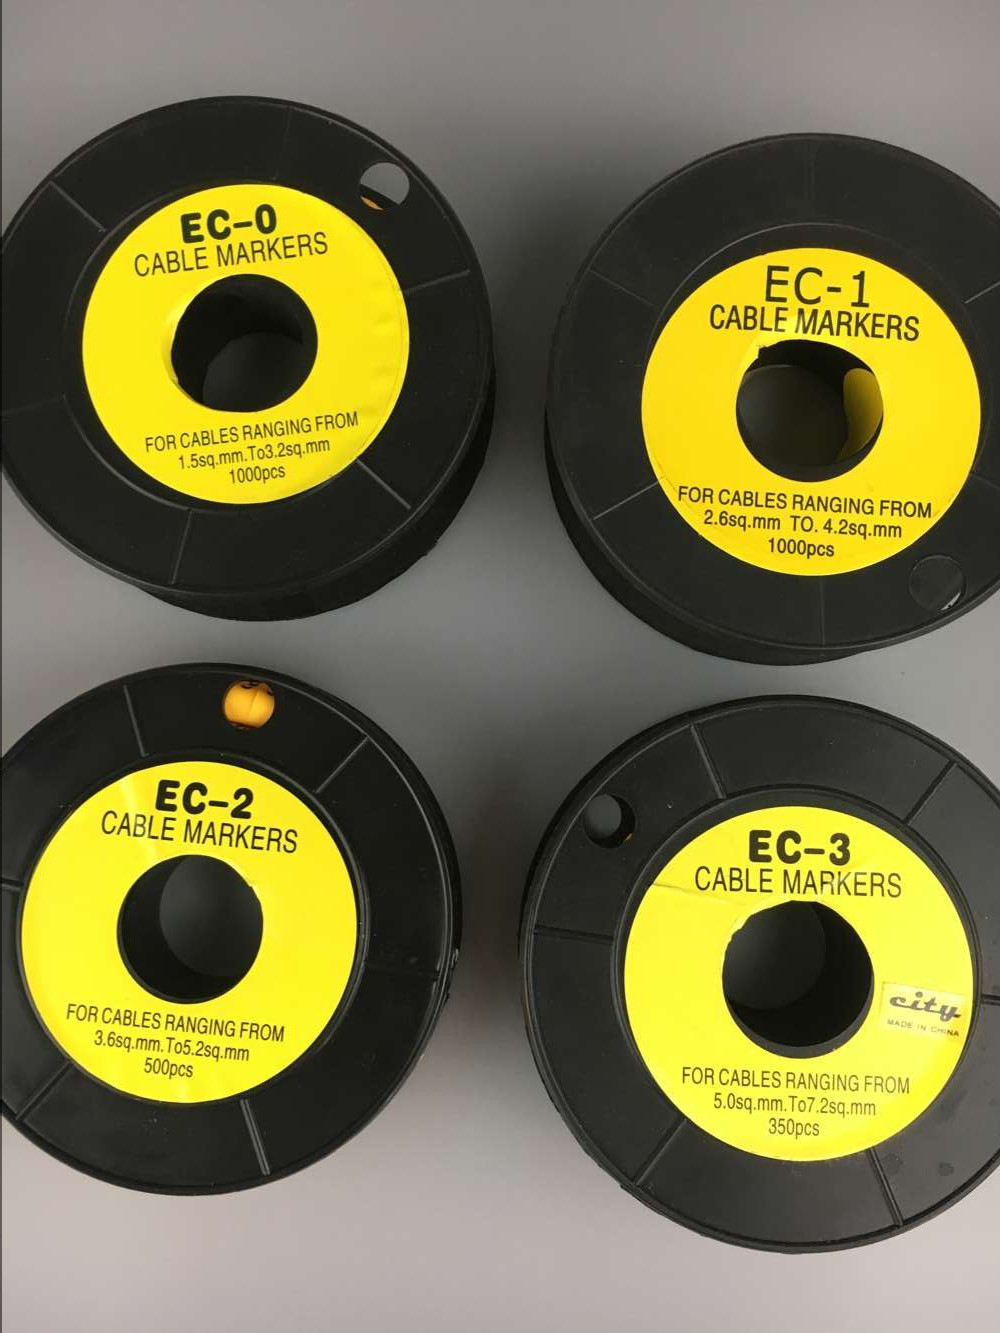 Cable buy electric cable 2 5 sq mm cable 1 5 sqmm wire product on - Order 1 Piece Ec 3 600pcs Each50pcs Cable Markers Letter 6sq Mm 0 To 9